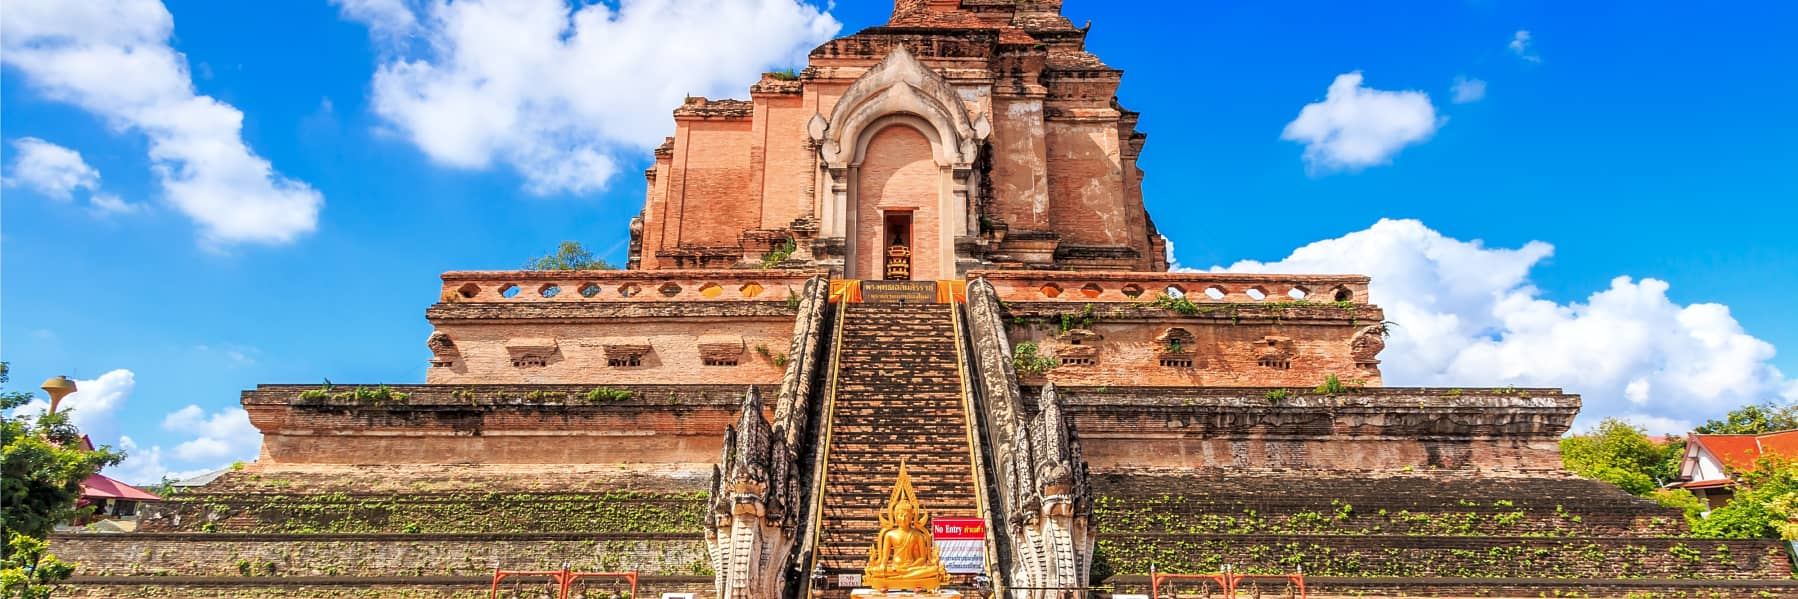 Chiang Mai Temples & City History Small Group Tour – Half Day gallery